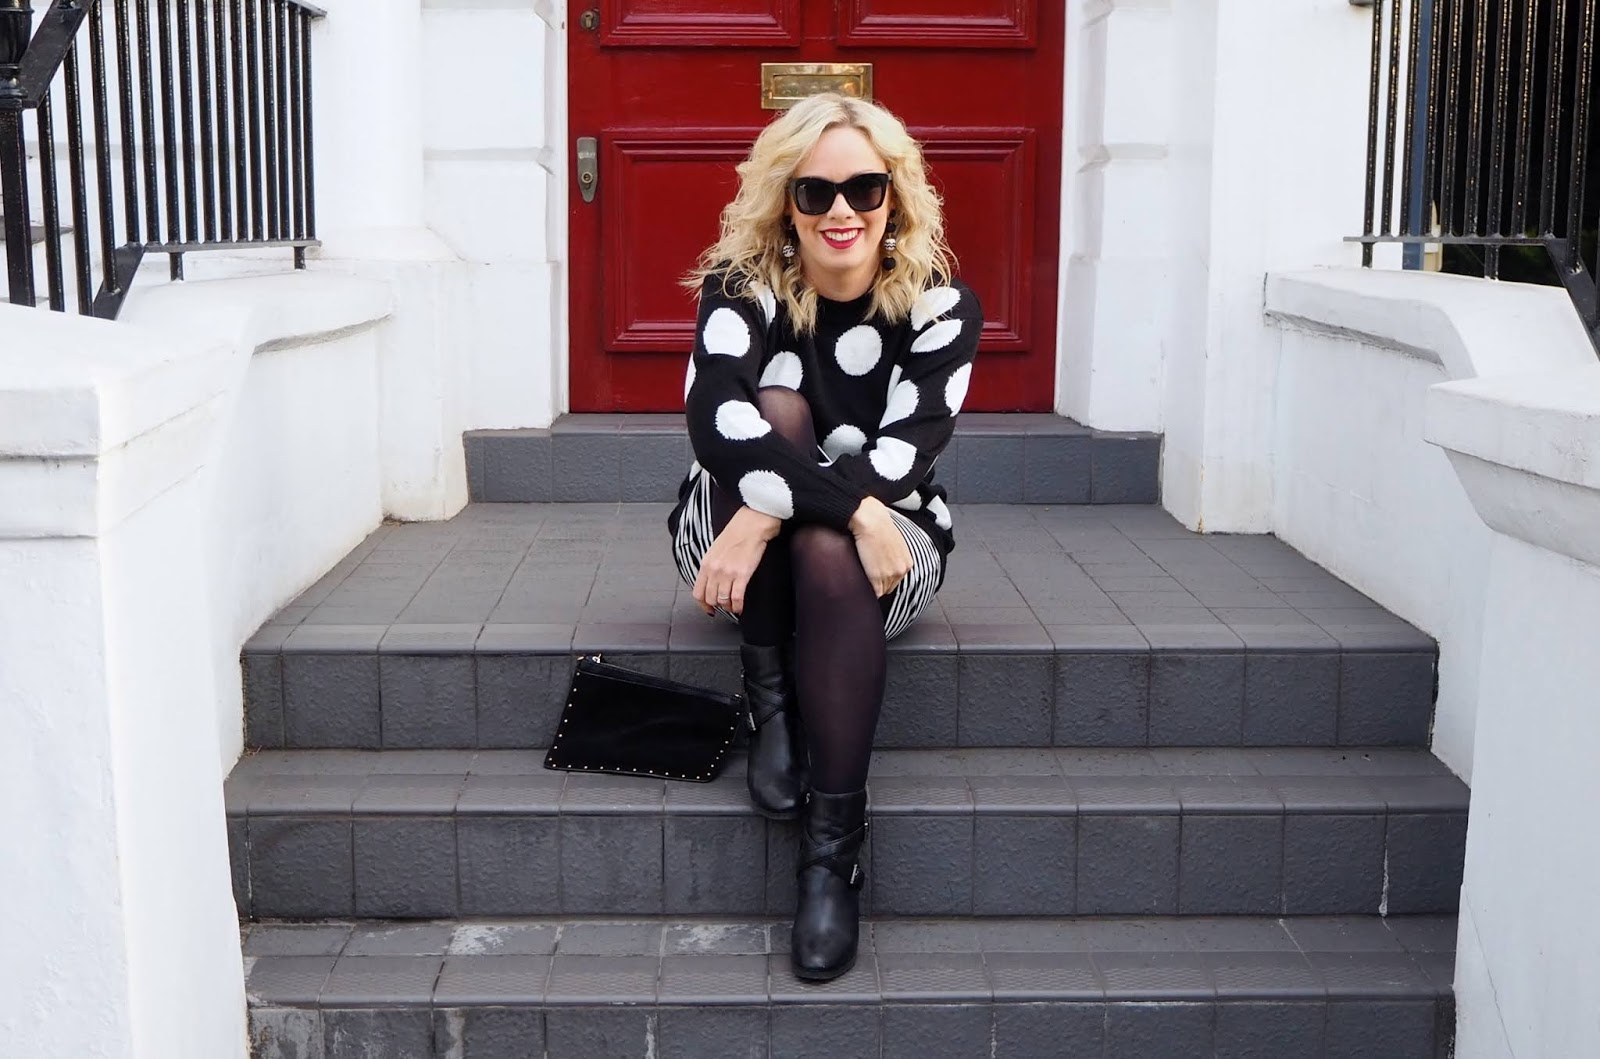 Black and white polka dot jumper with striped skirt, black tights, black boots, red lipstick and black wayfarer sunglasses